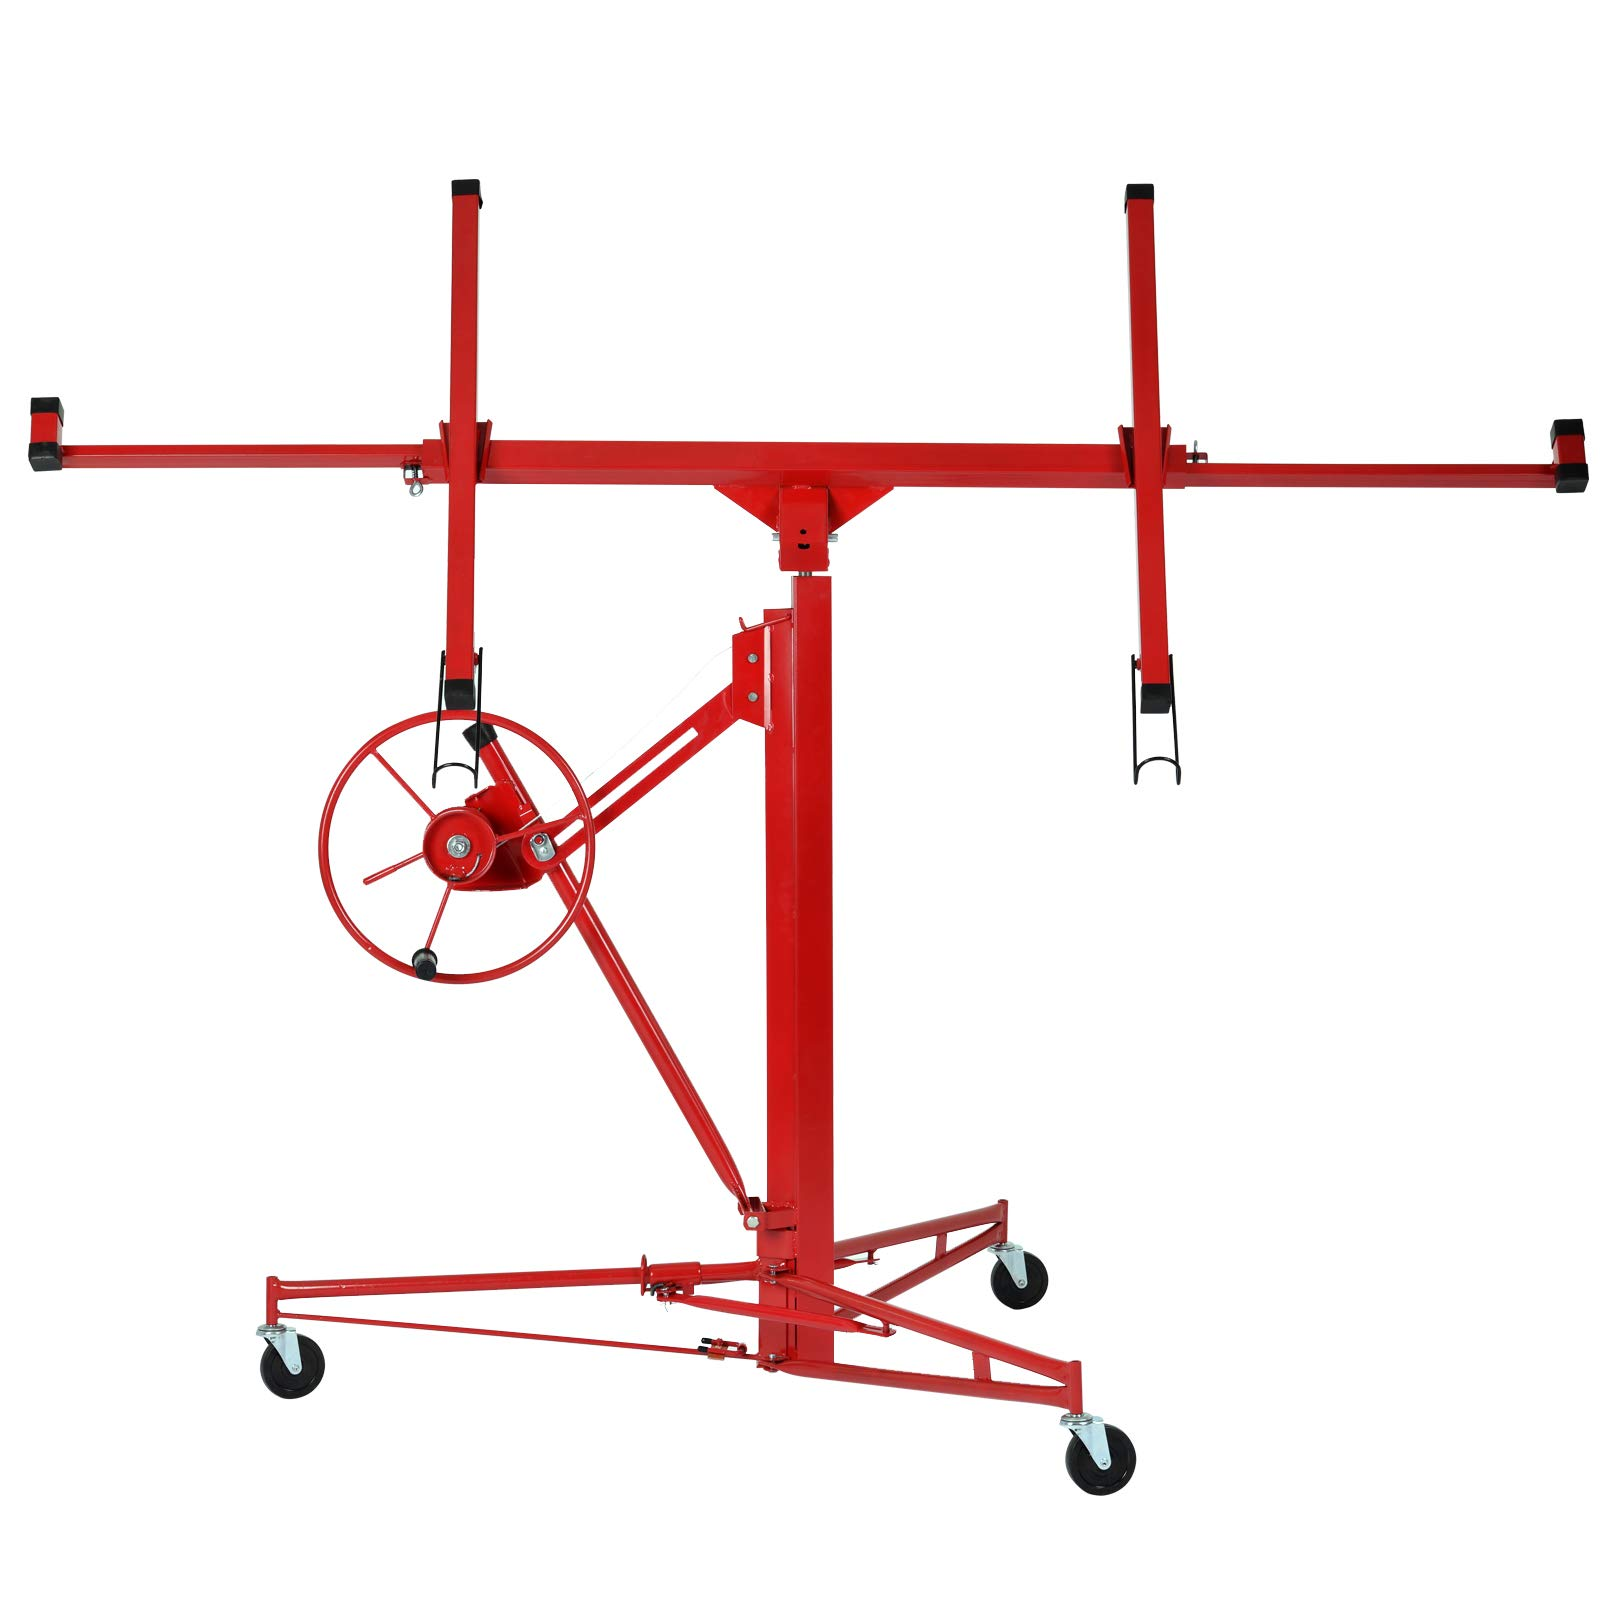 11' Drywall Lift Rolling Lifter Panel Dry Wall Hoist Jack Lockable Caster Wheels Construction Tool, 150Lbs, Red